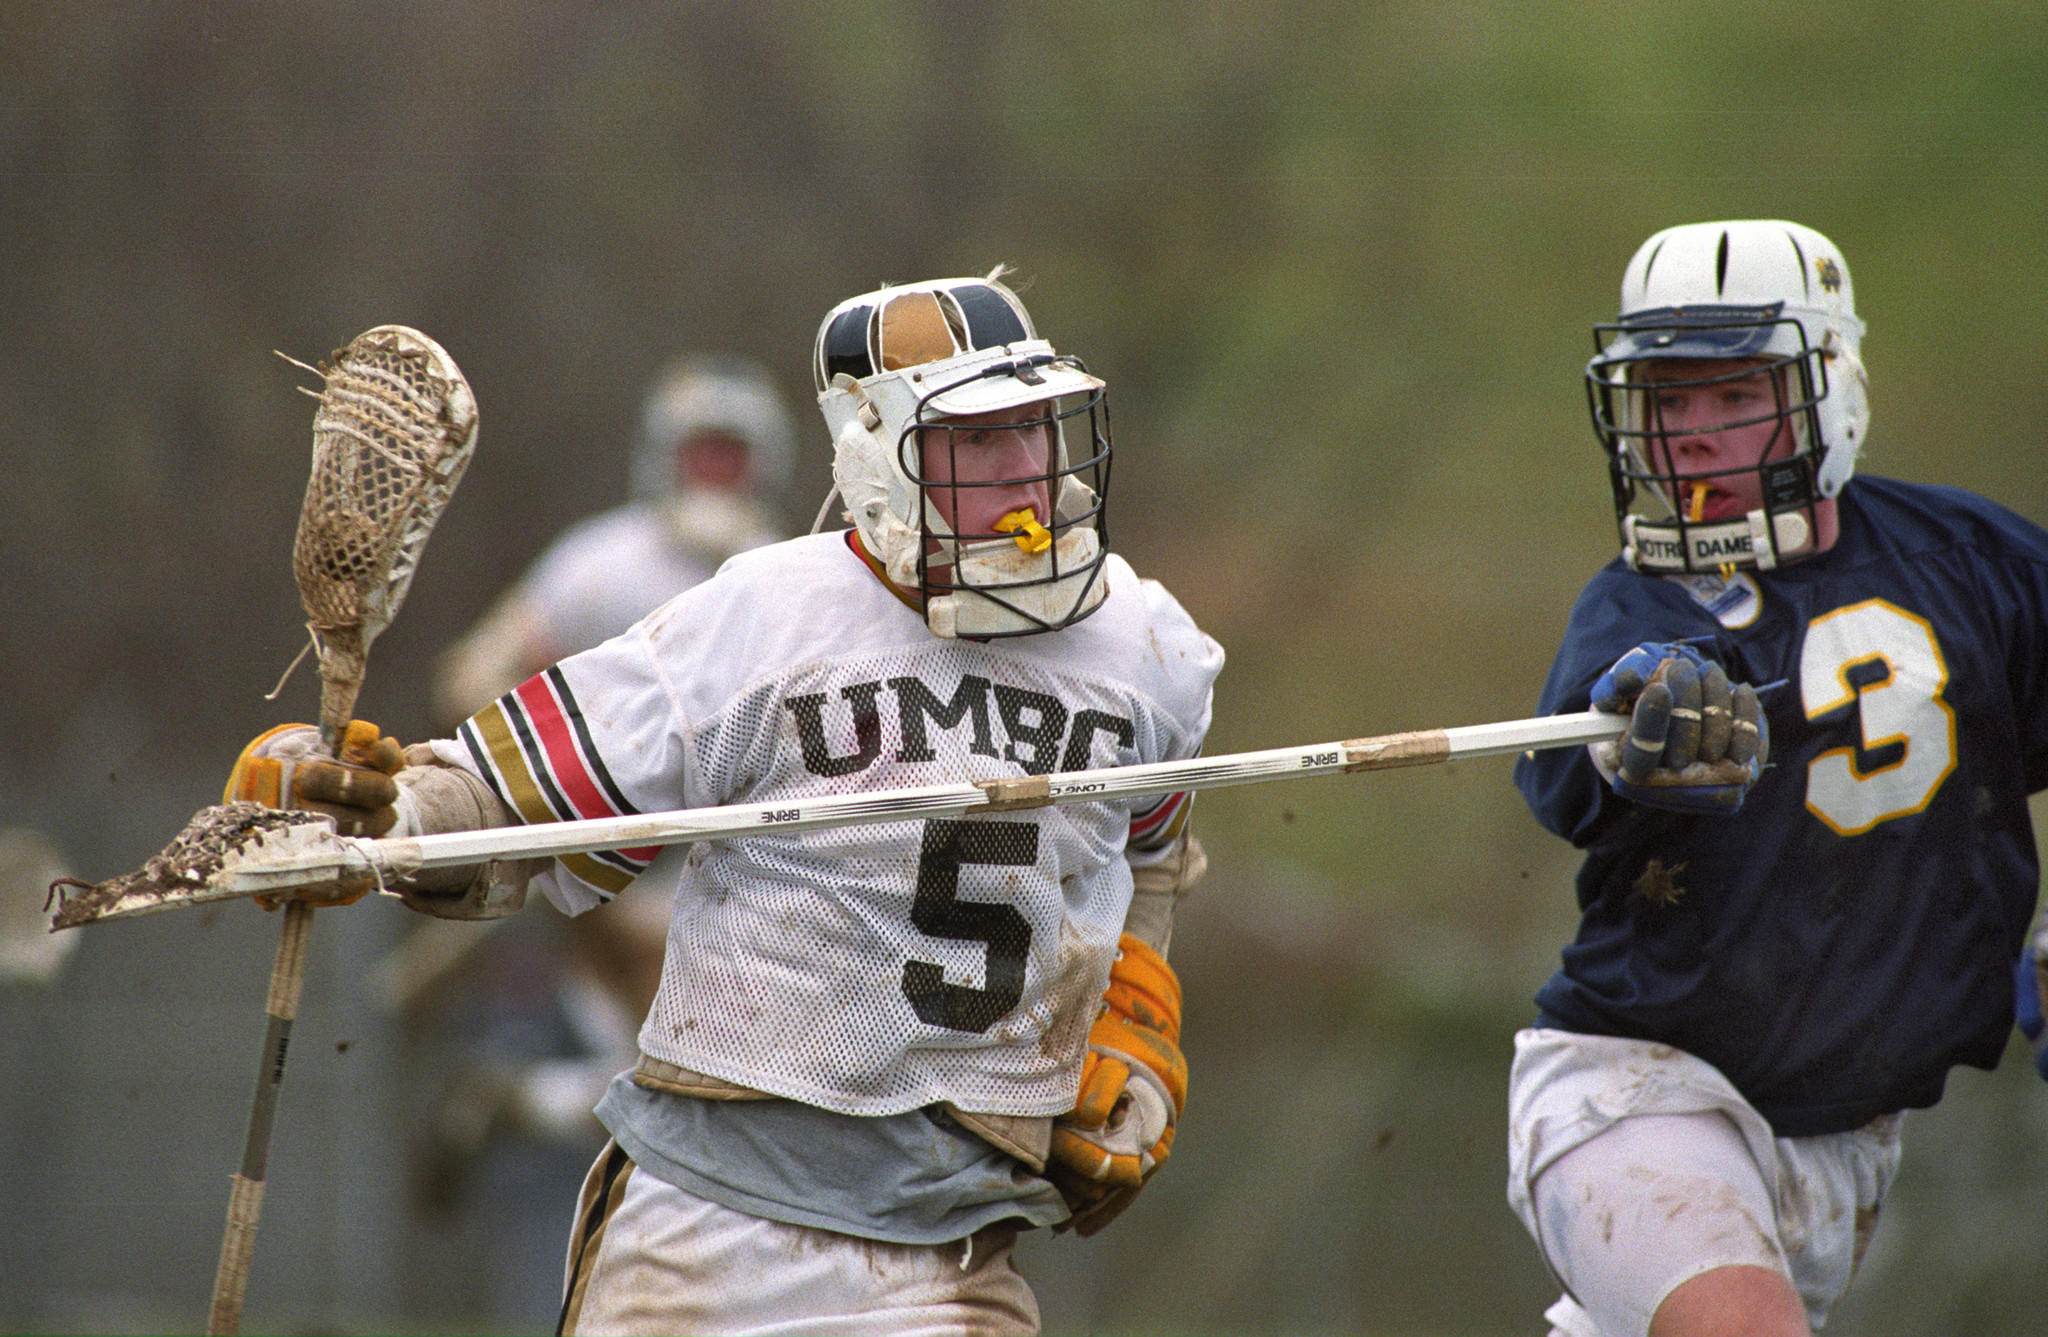 UMBC's Steve Marohl (5) carries the ball as Notre Dame's Garrett Reilly defends in a 1992 game. The Retrievers won, 13-7.